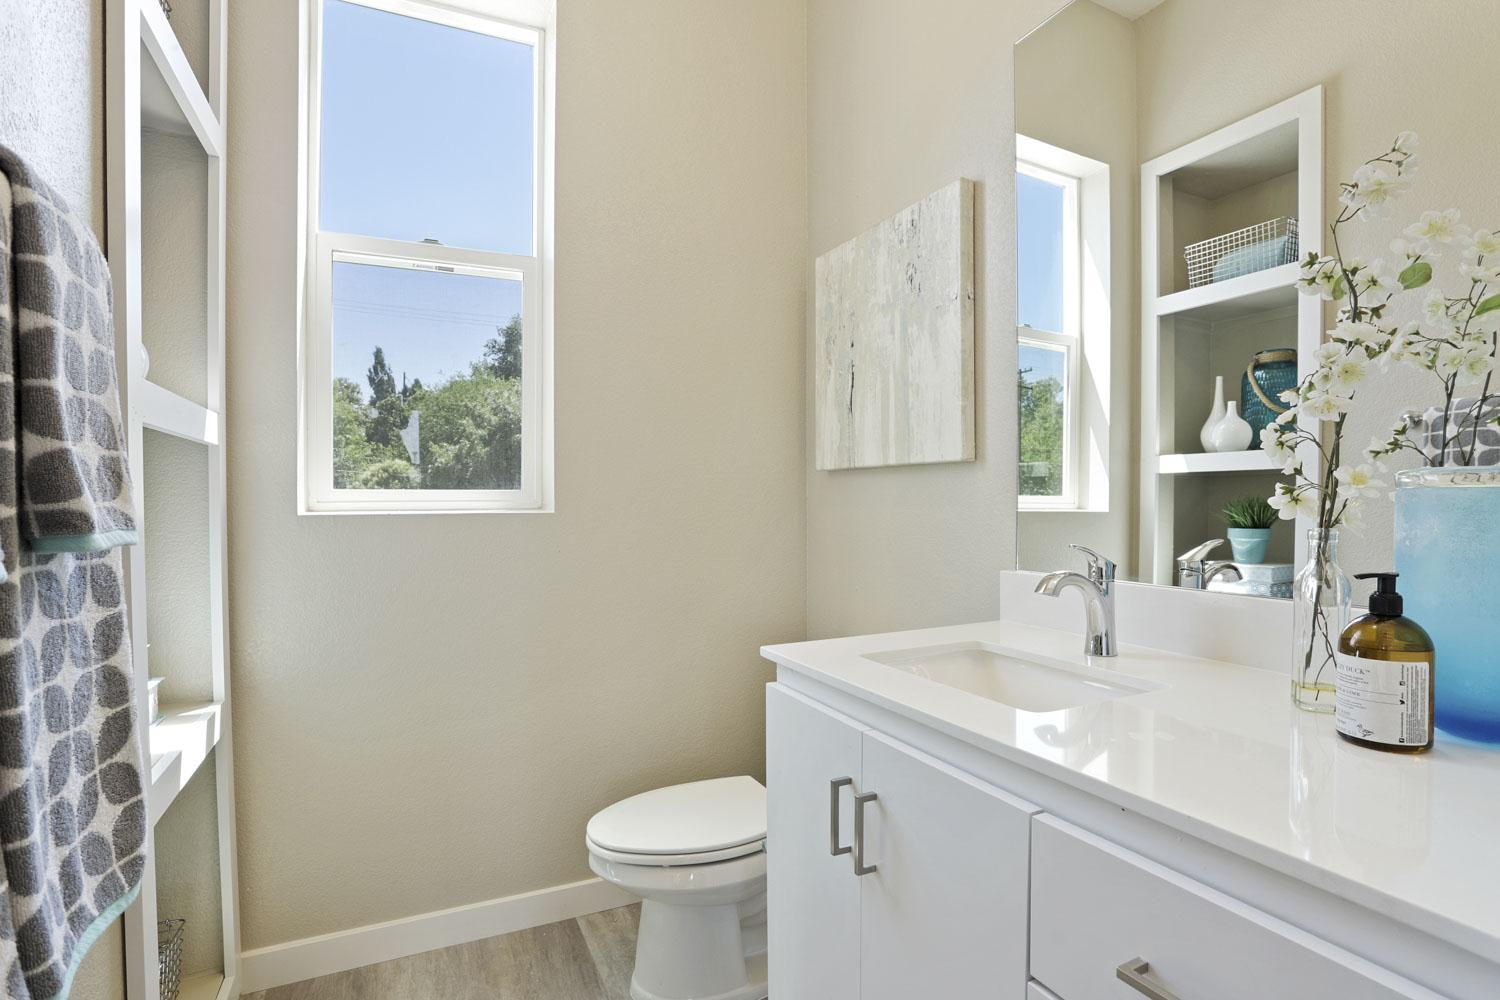 Bathroom featured in the Plan 1 By Next Generation Capital  in Sacramento, CA